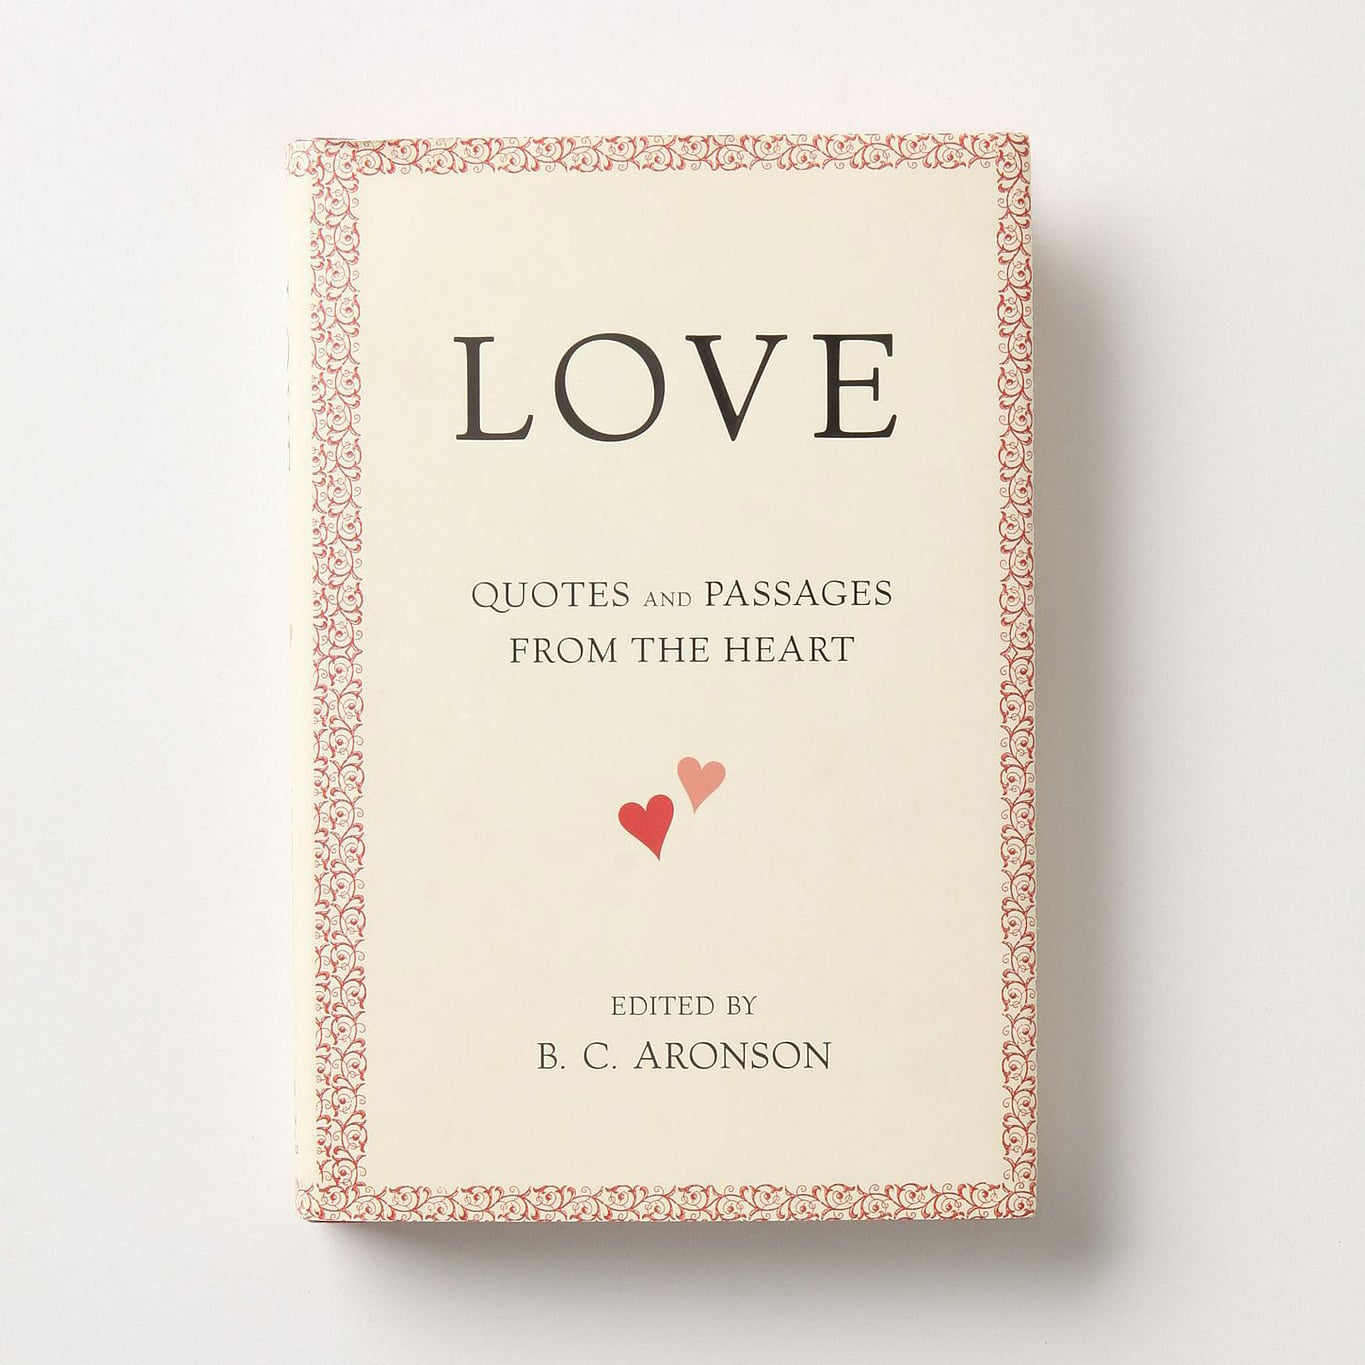 Love: Quotes and Passages From the Heart